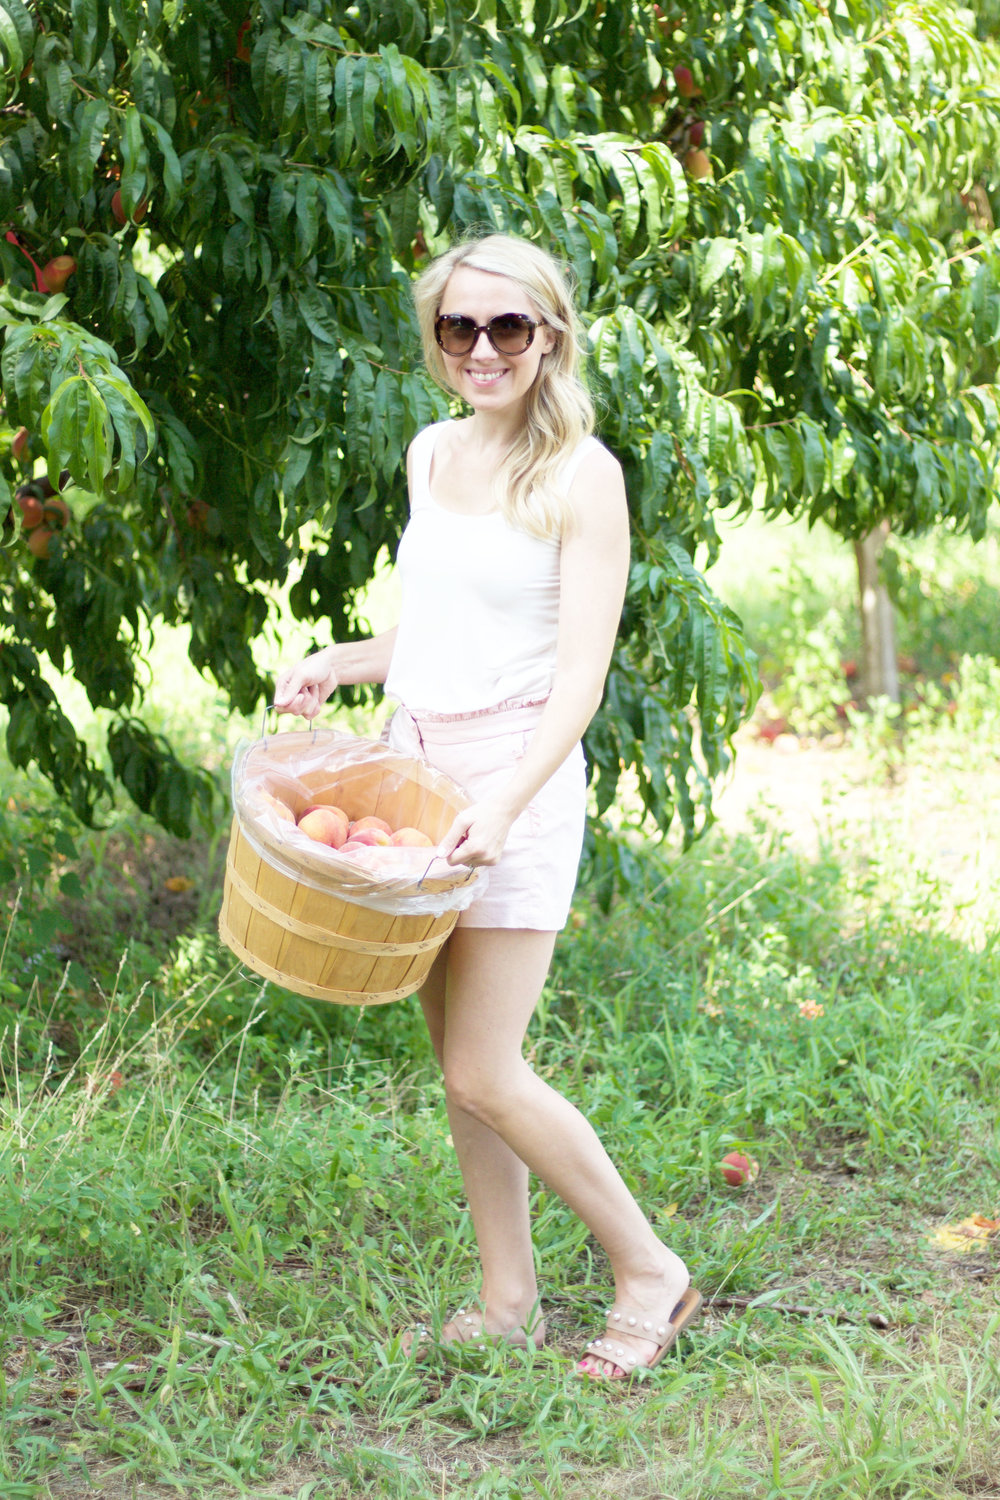 Peach Picking Fun, So Dressed Up